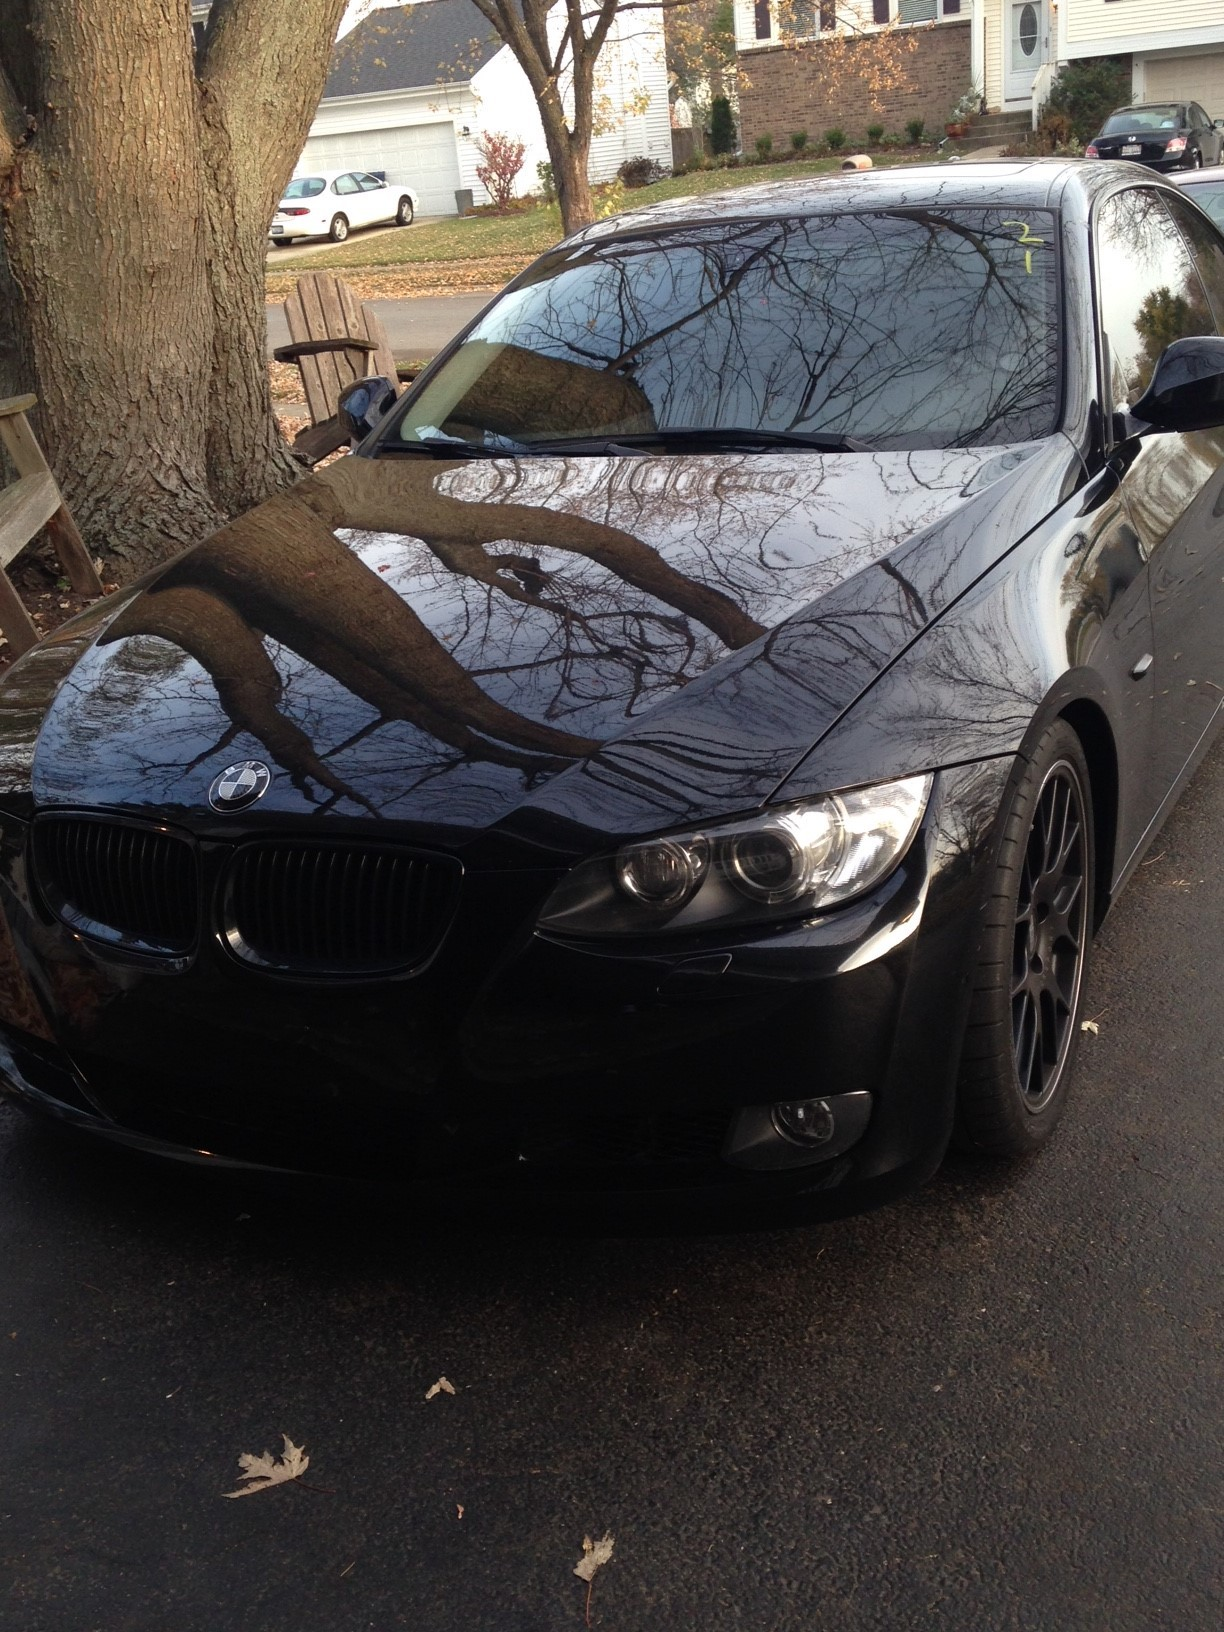 BLK 2010 BMW 335xi COBB Advanced Tuning by WedgePerformance 335XI